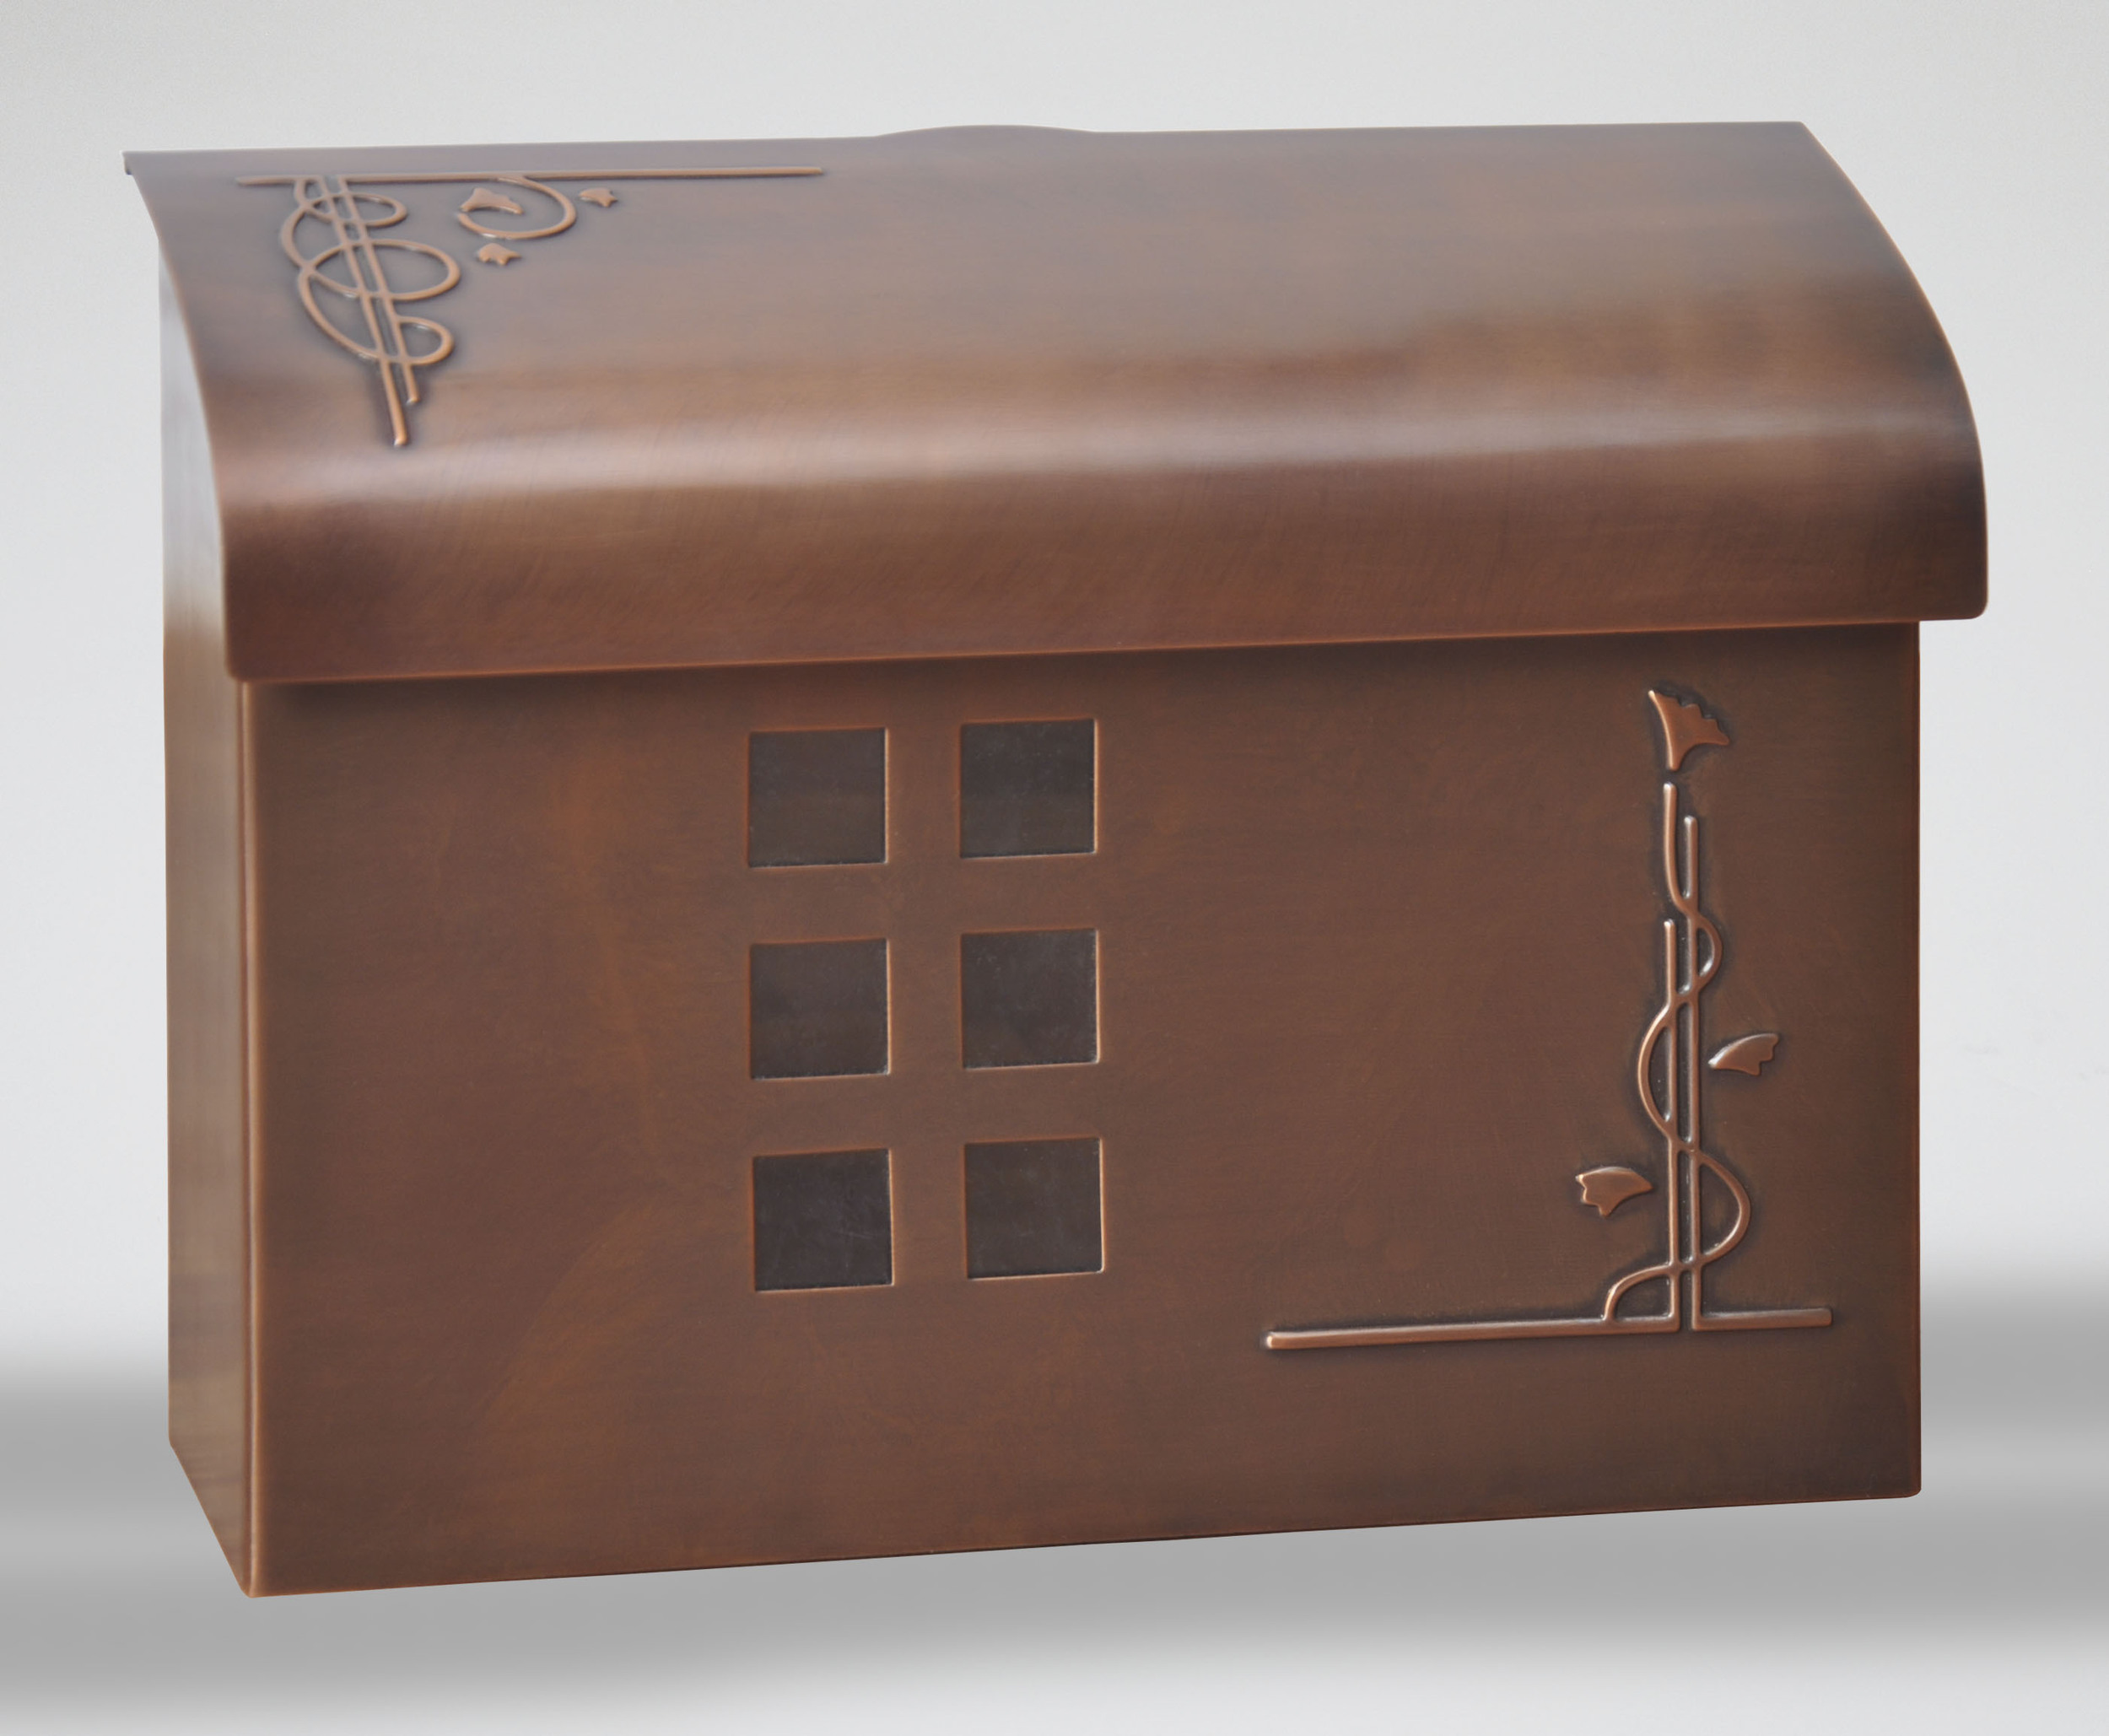 212E7AC  Arts & Crafts wall mount mail box.  Size: 14.5 W 11 H 5 D. Hardware included. Shown in antique copper. Other finishes available.